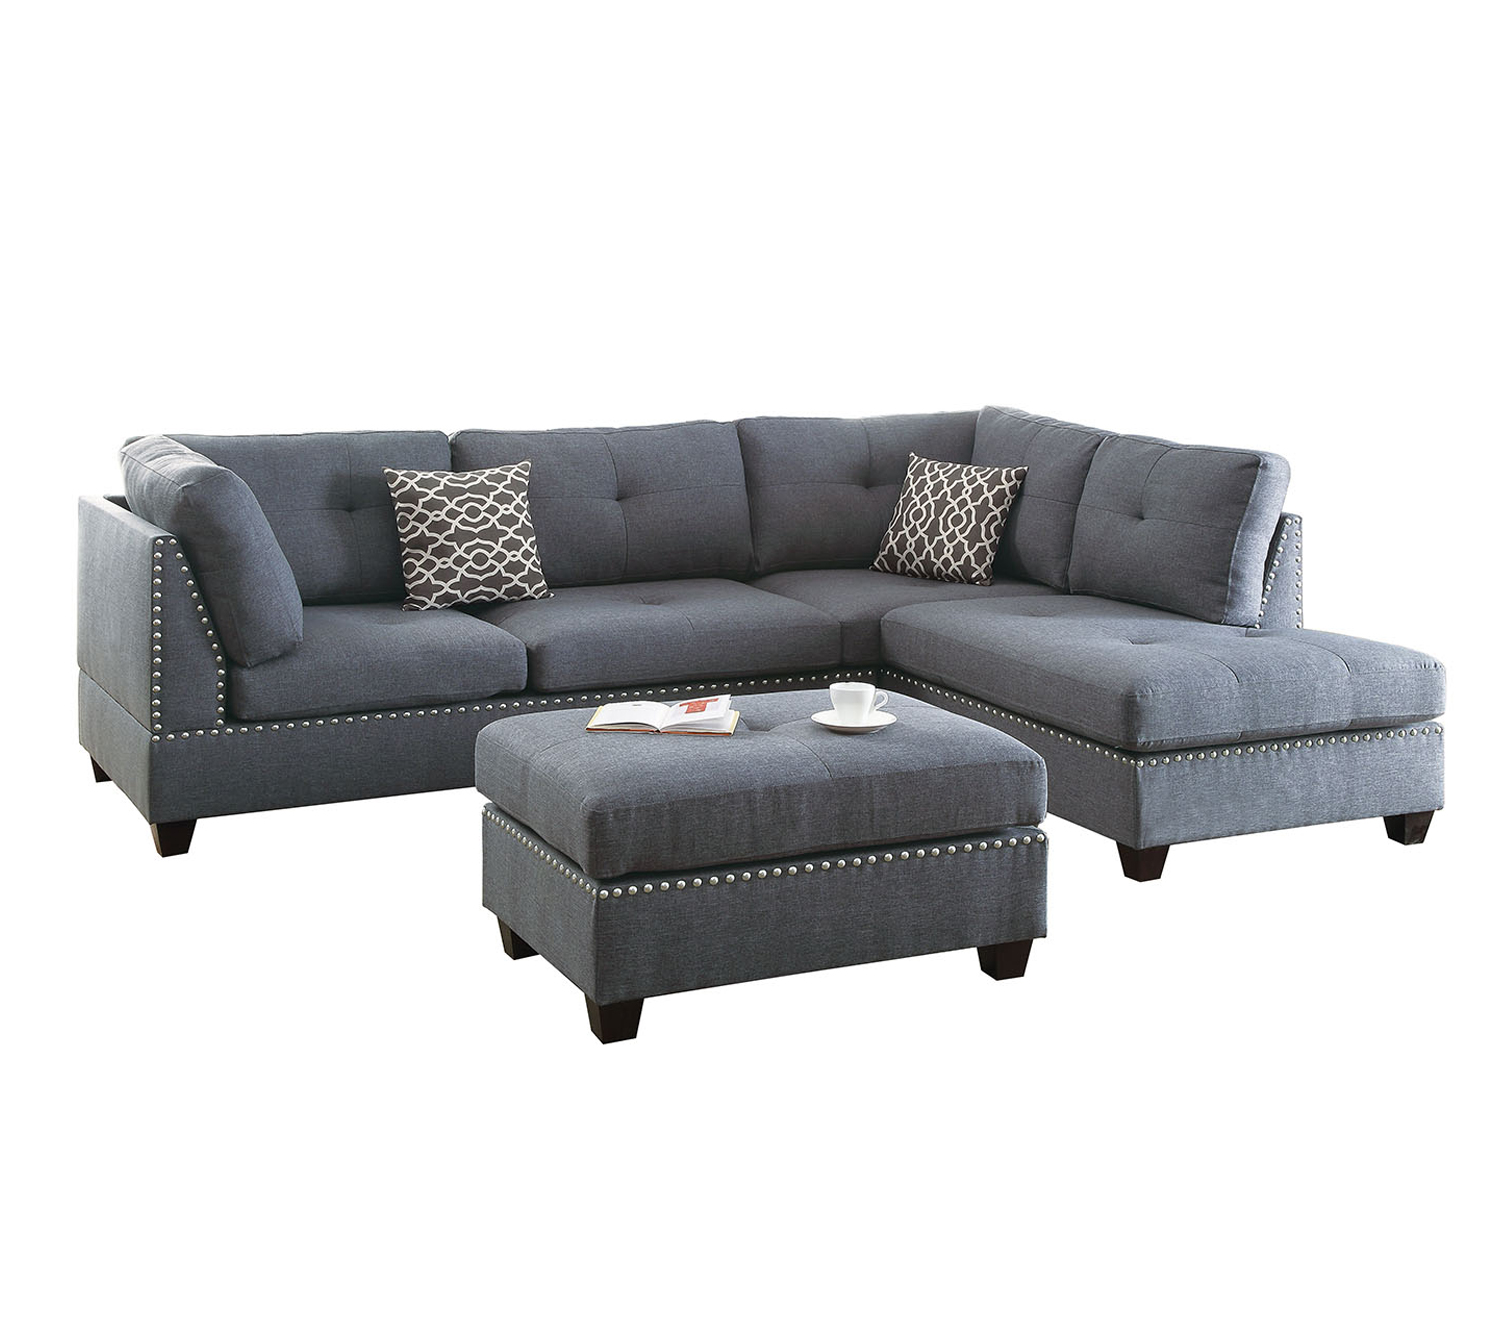 Bobkona Kipp Linen-like Polyfabric Left or Right hand Chaise Sectional Set with Ottoman in Blue Grey by Poundex